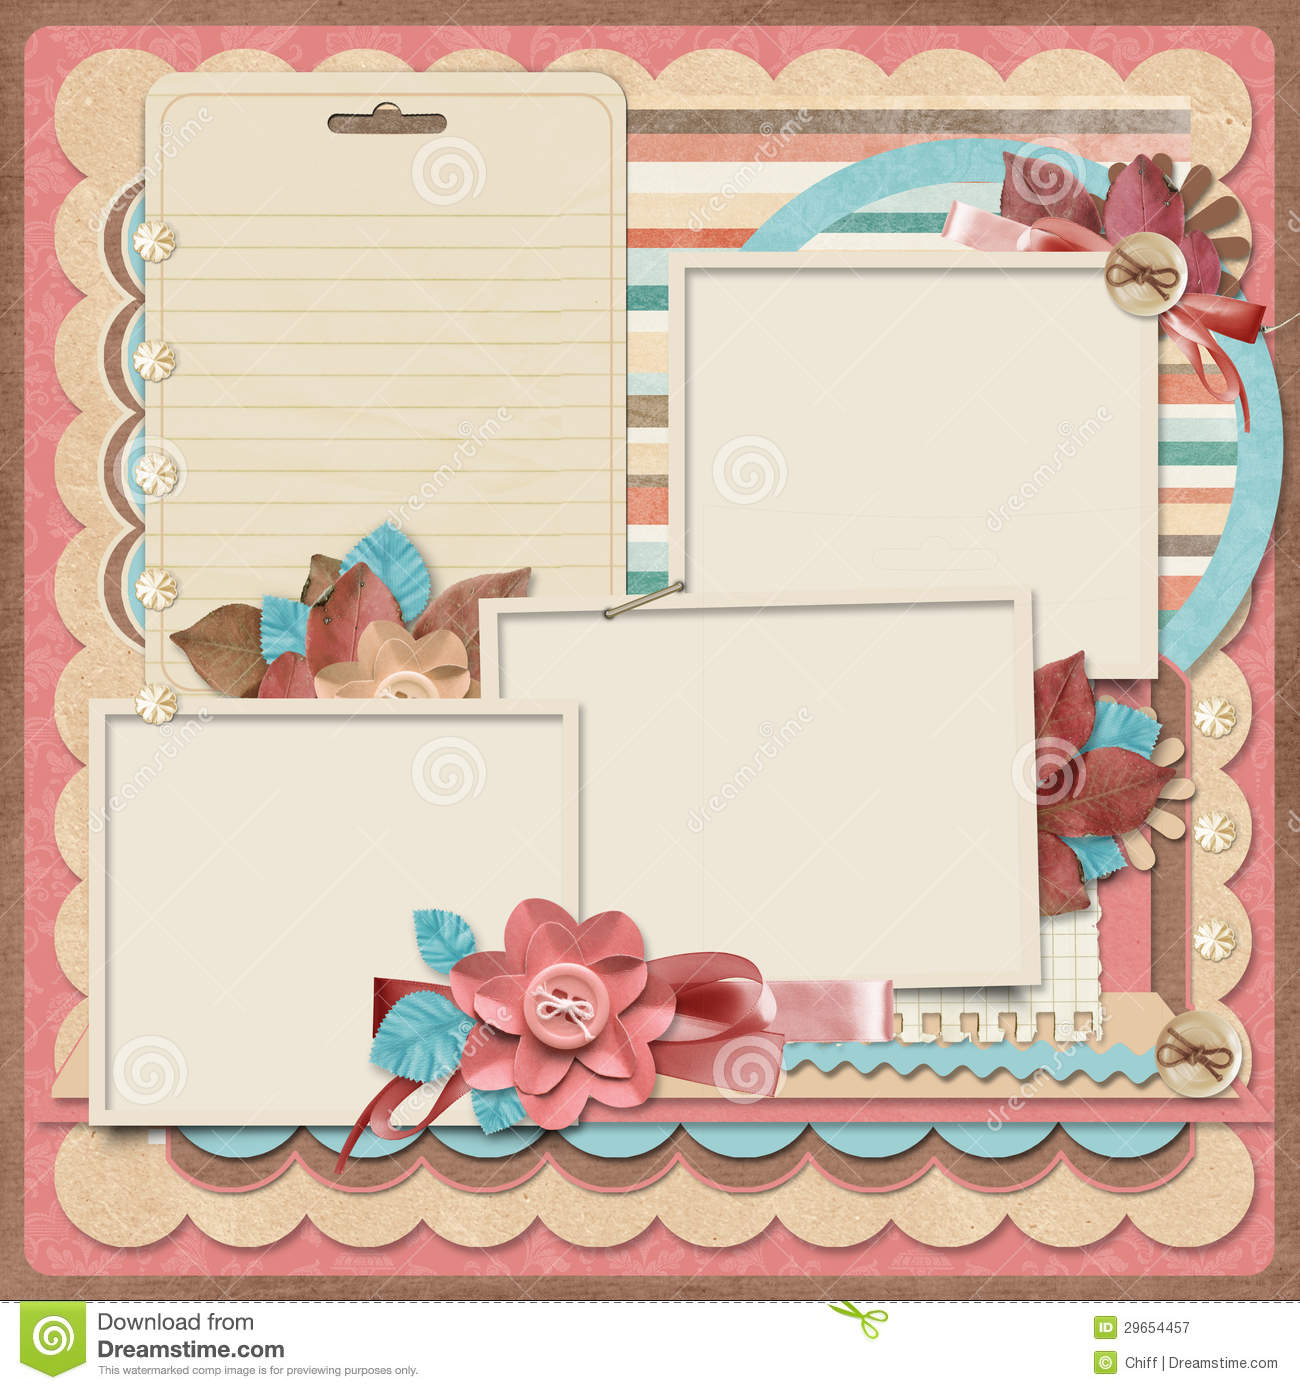 Retro Family Album.365 Project. Scrapbooking Templates. Journal, Holidays.  Photo Album Templates Free